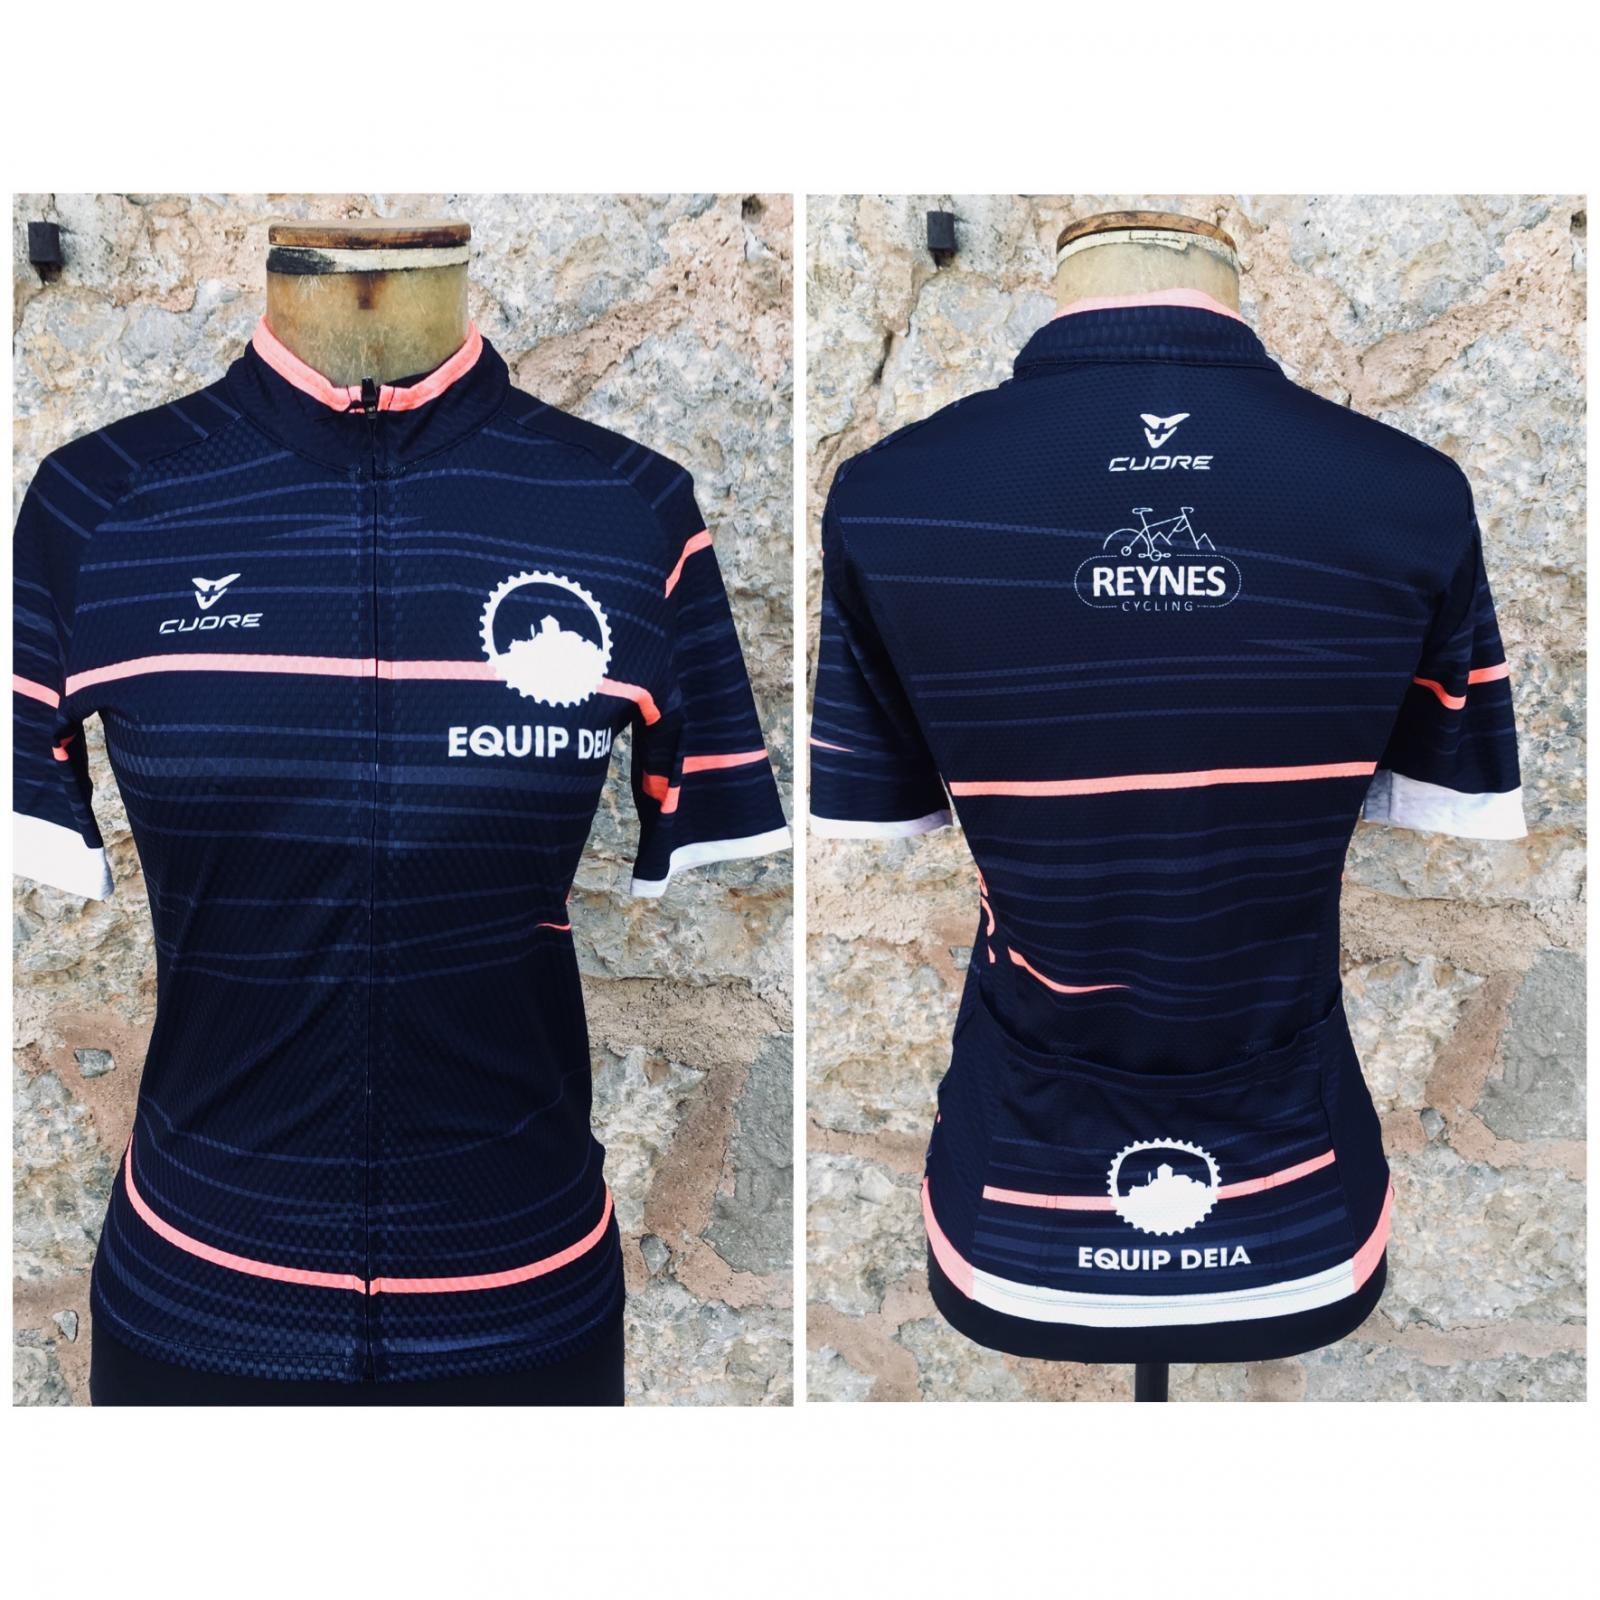 ccbec07bd ... cycling jerseys from Cuore Switzerland just arrived to our shop. We  have them in our shop in Deia and Porto Soller. Come to check them you can  choose ...